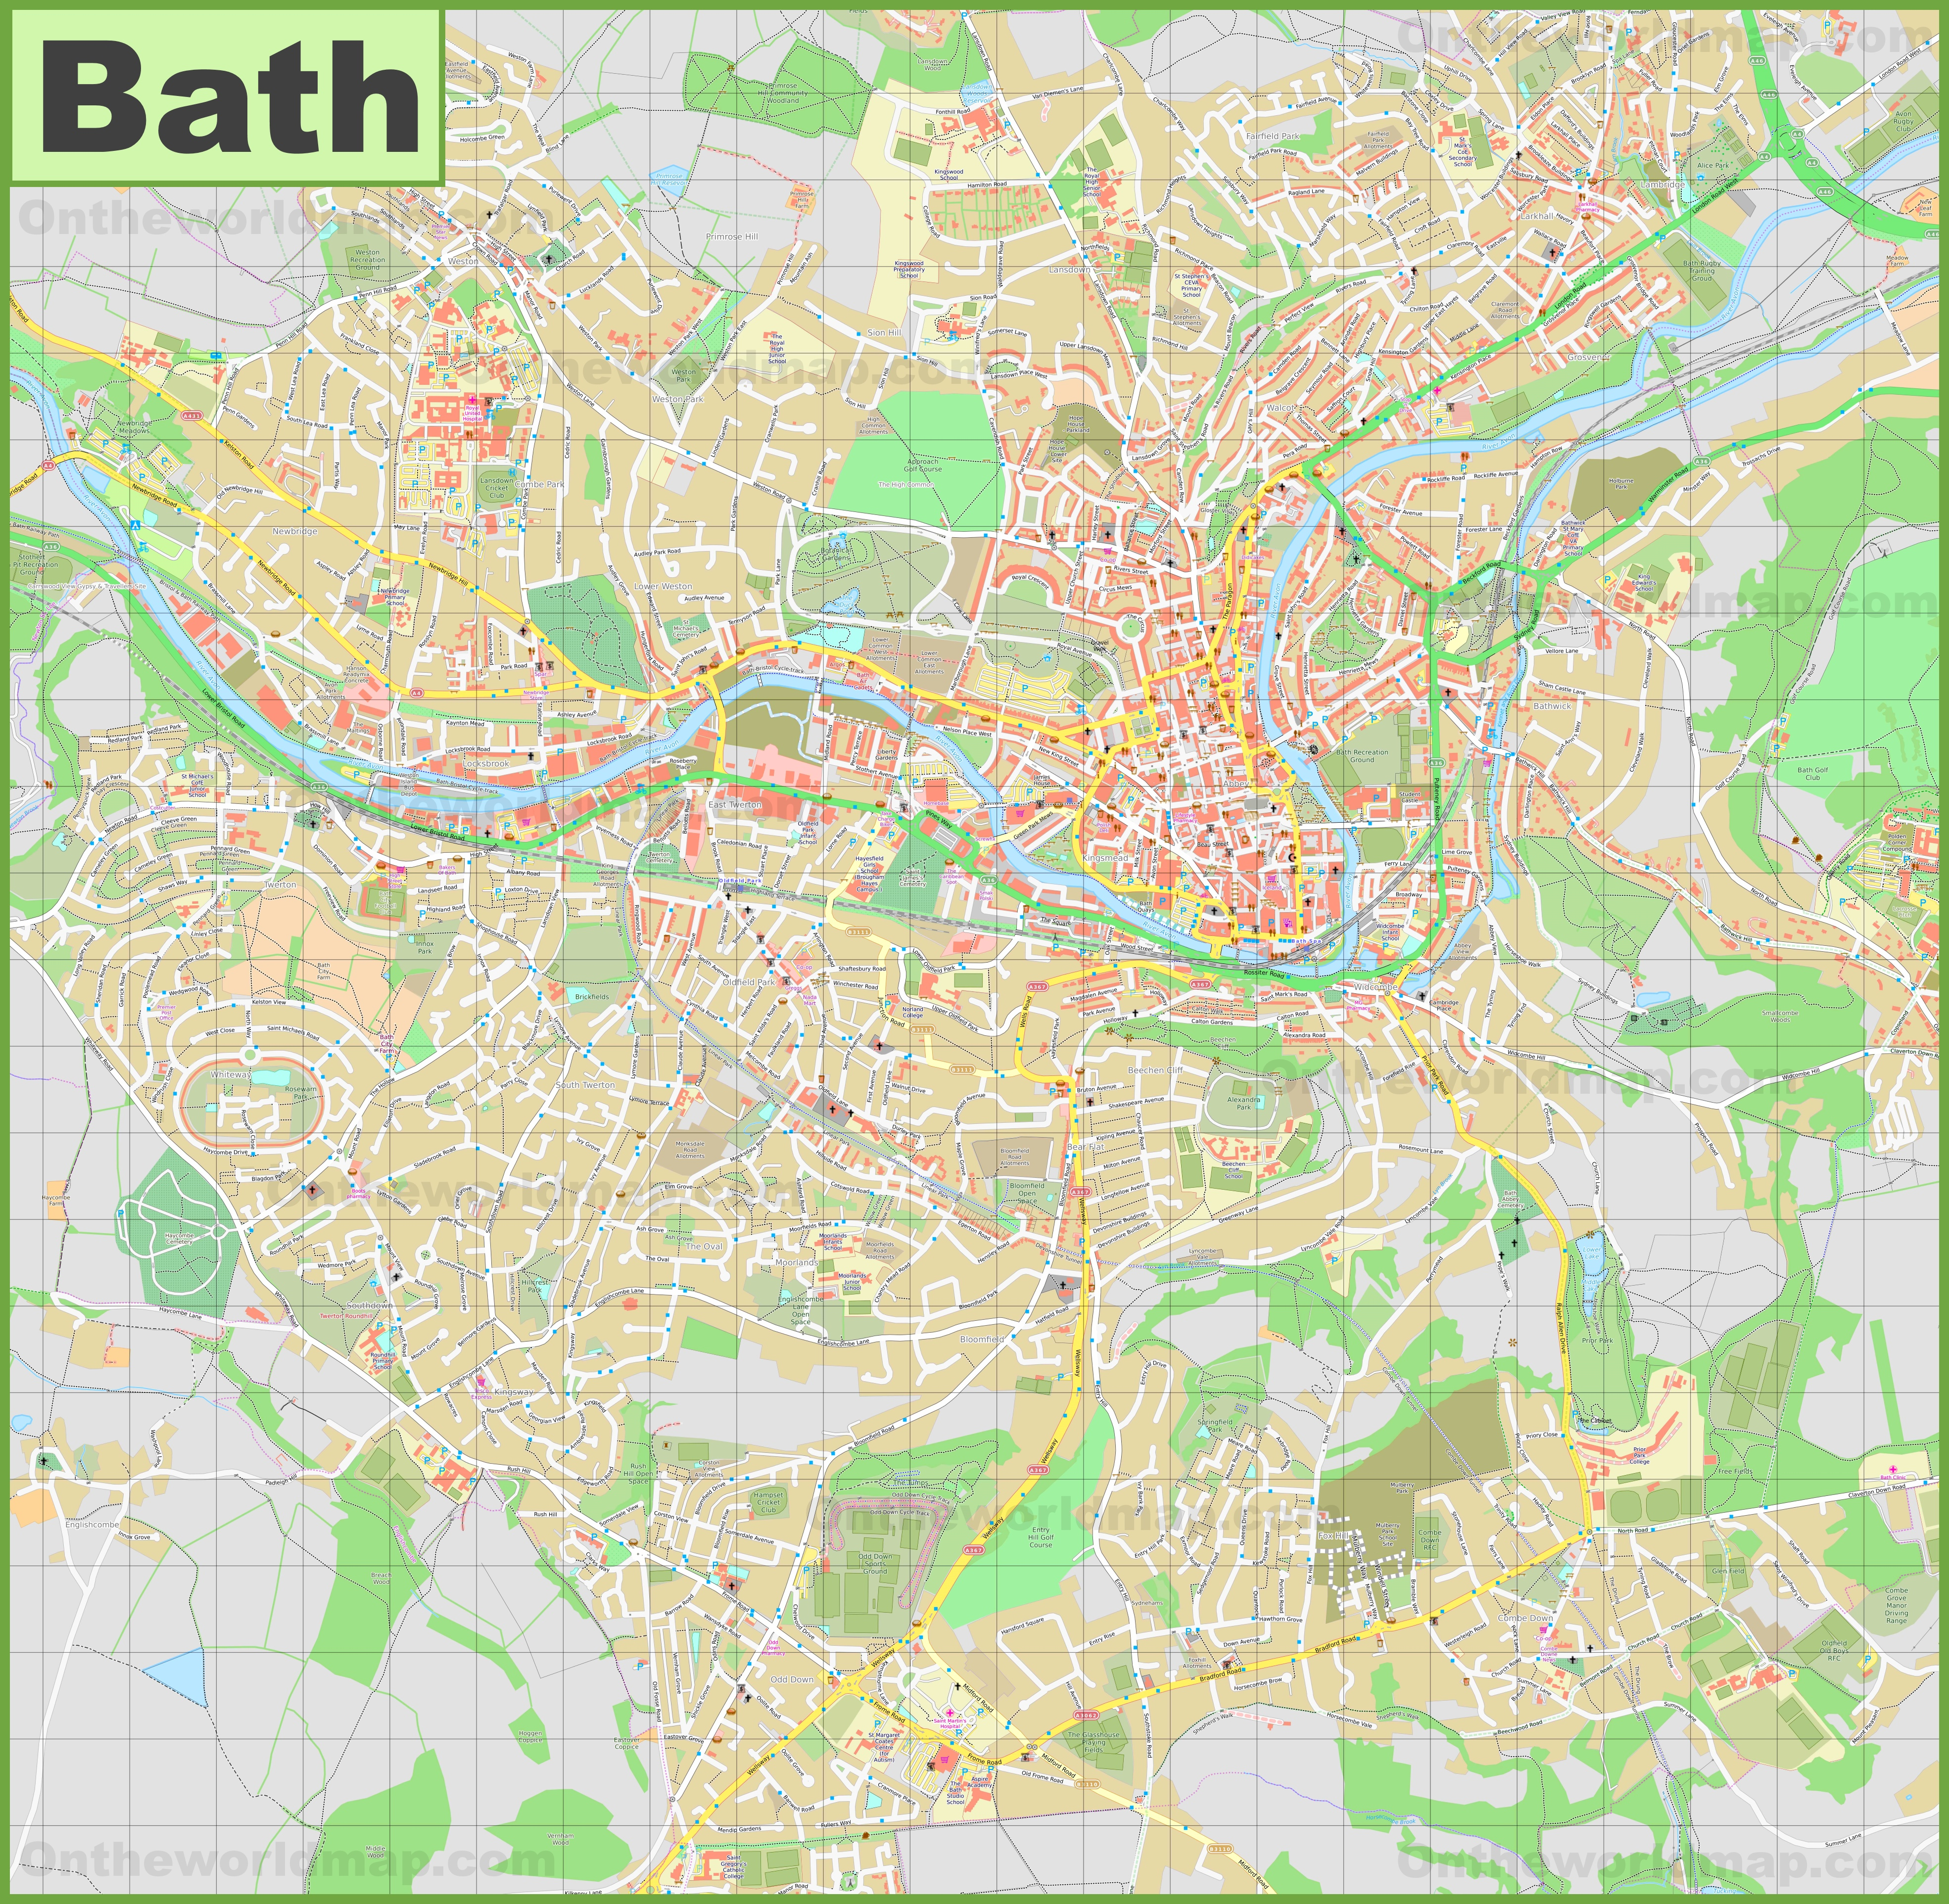 Detailed map of Bath